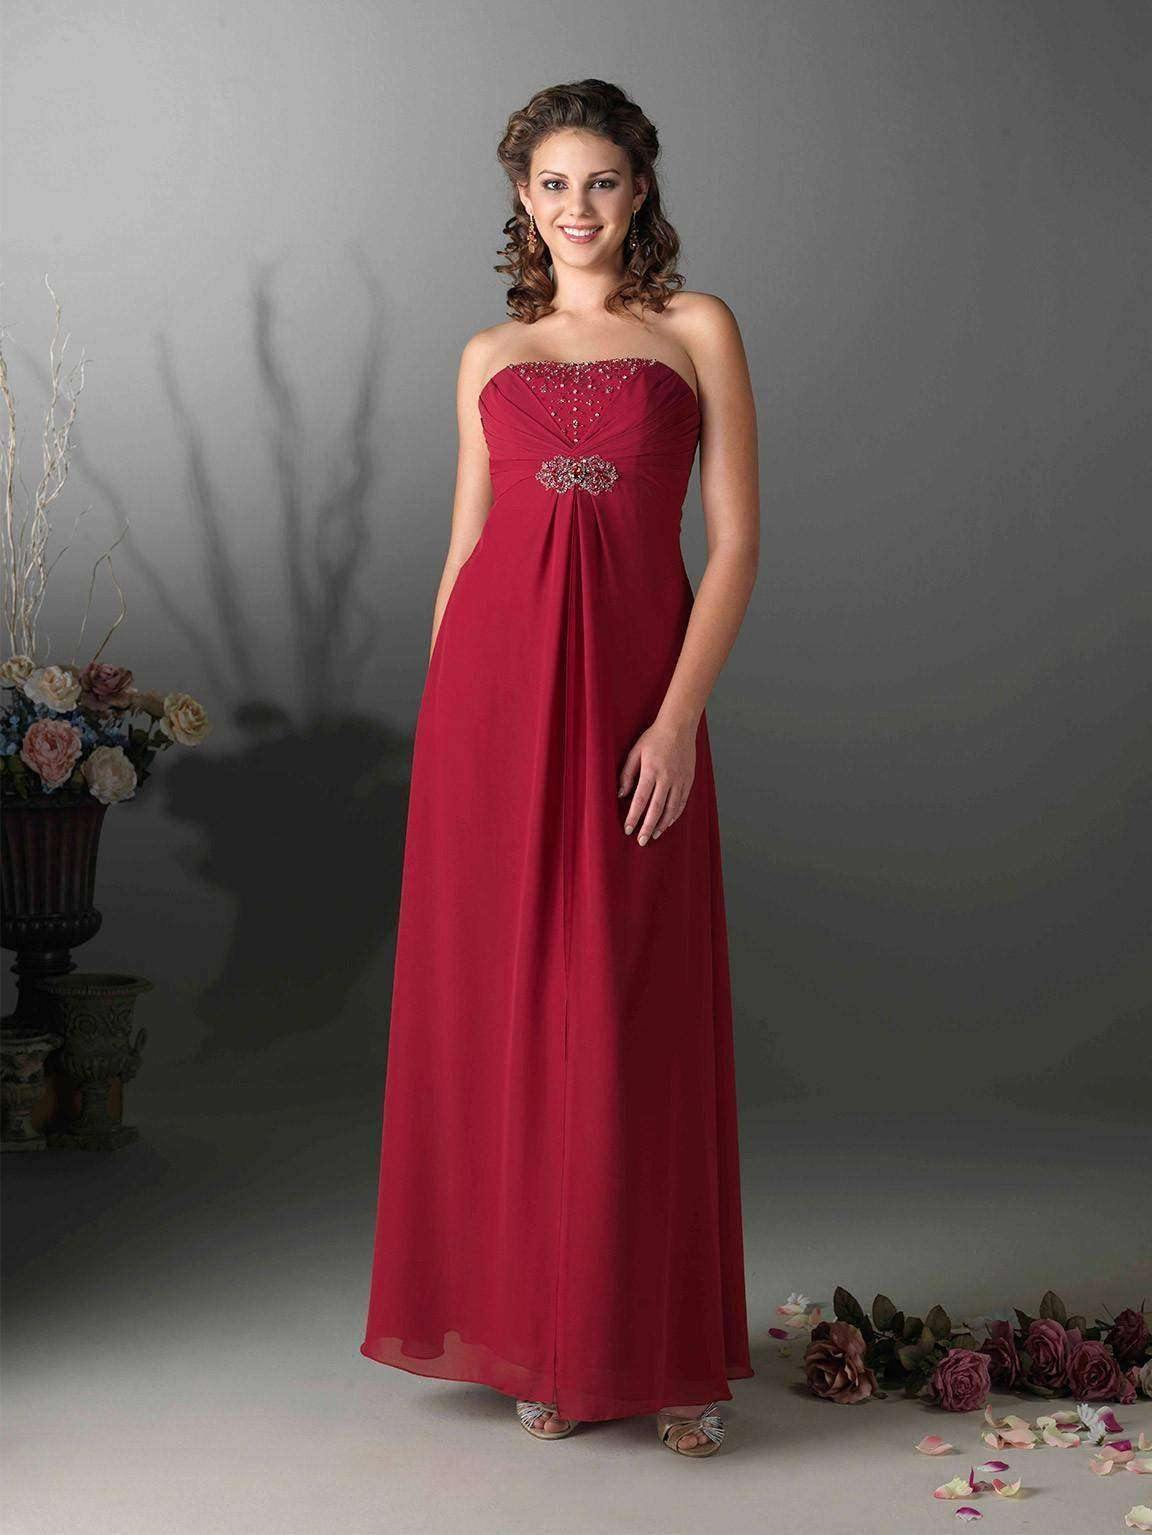 UK28 BURGUNDY - KERRY - SALE - Adore Bridal and Occasion Wear